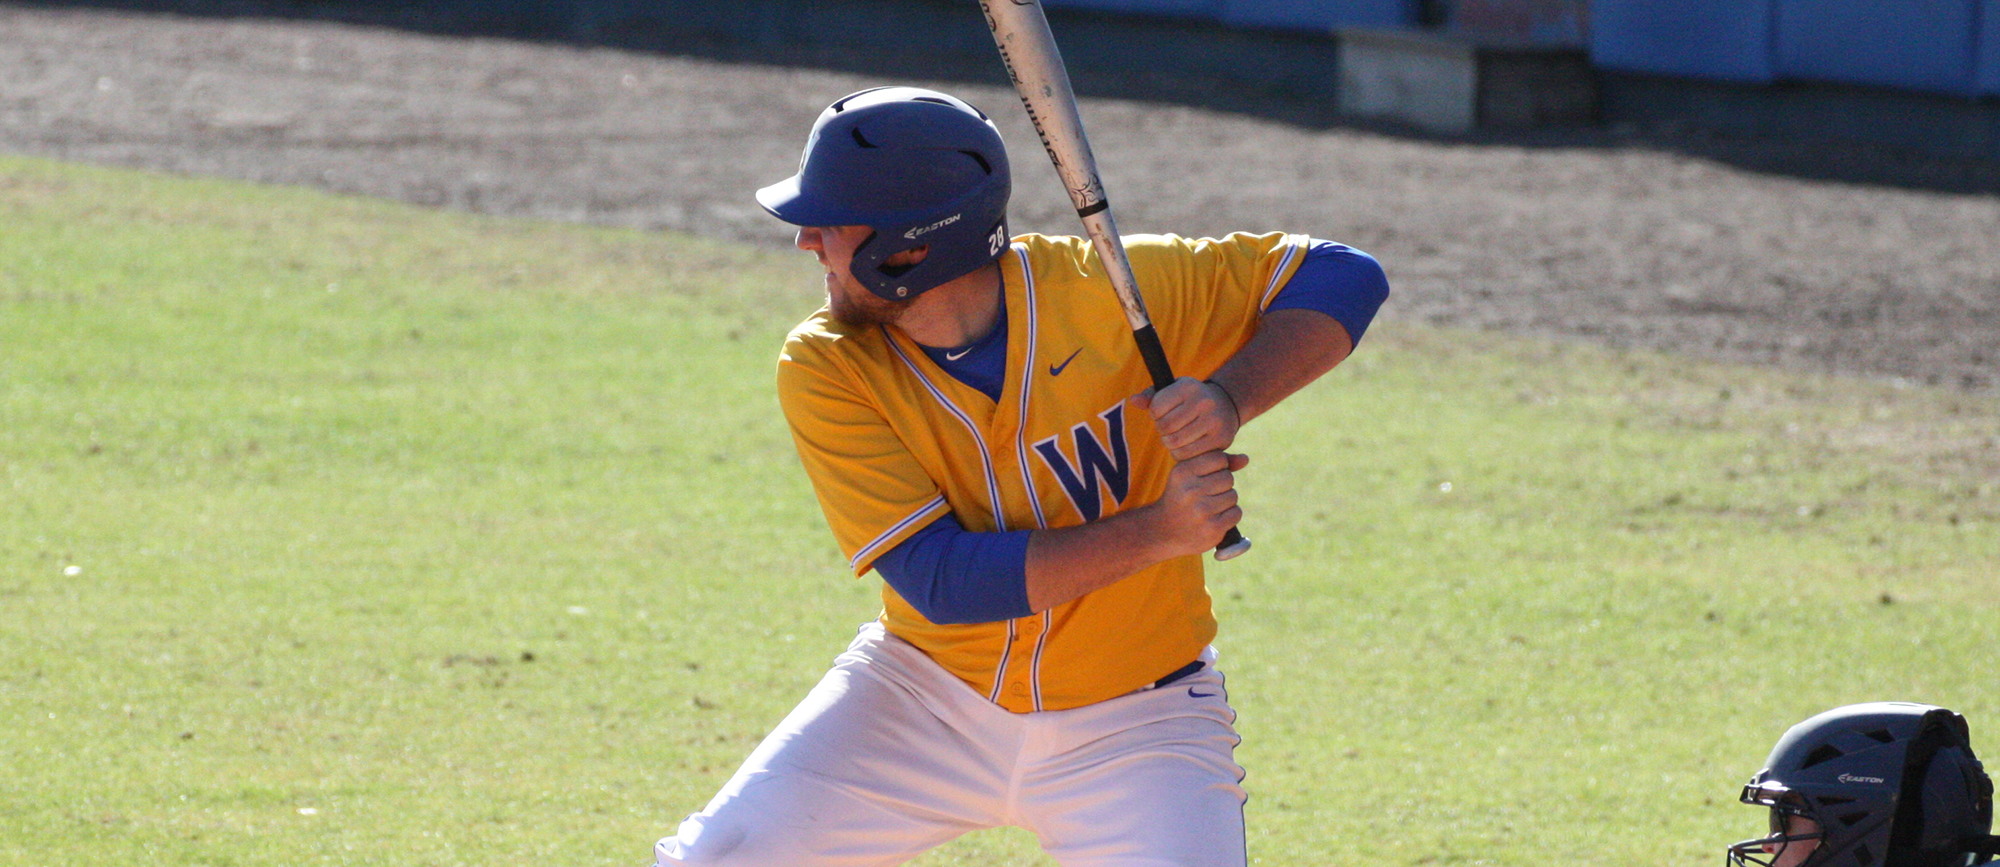 Sophomore Zac Nussbaum hit a grand slam in game two of Western New England's CCC-opening sweep over Eastern Nazarene on Thursday. (Photo by Jeff Rosenblatt)